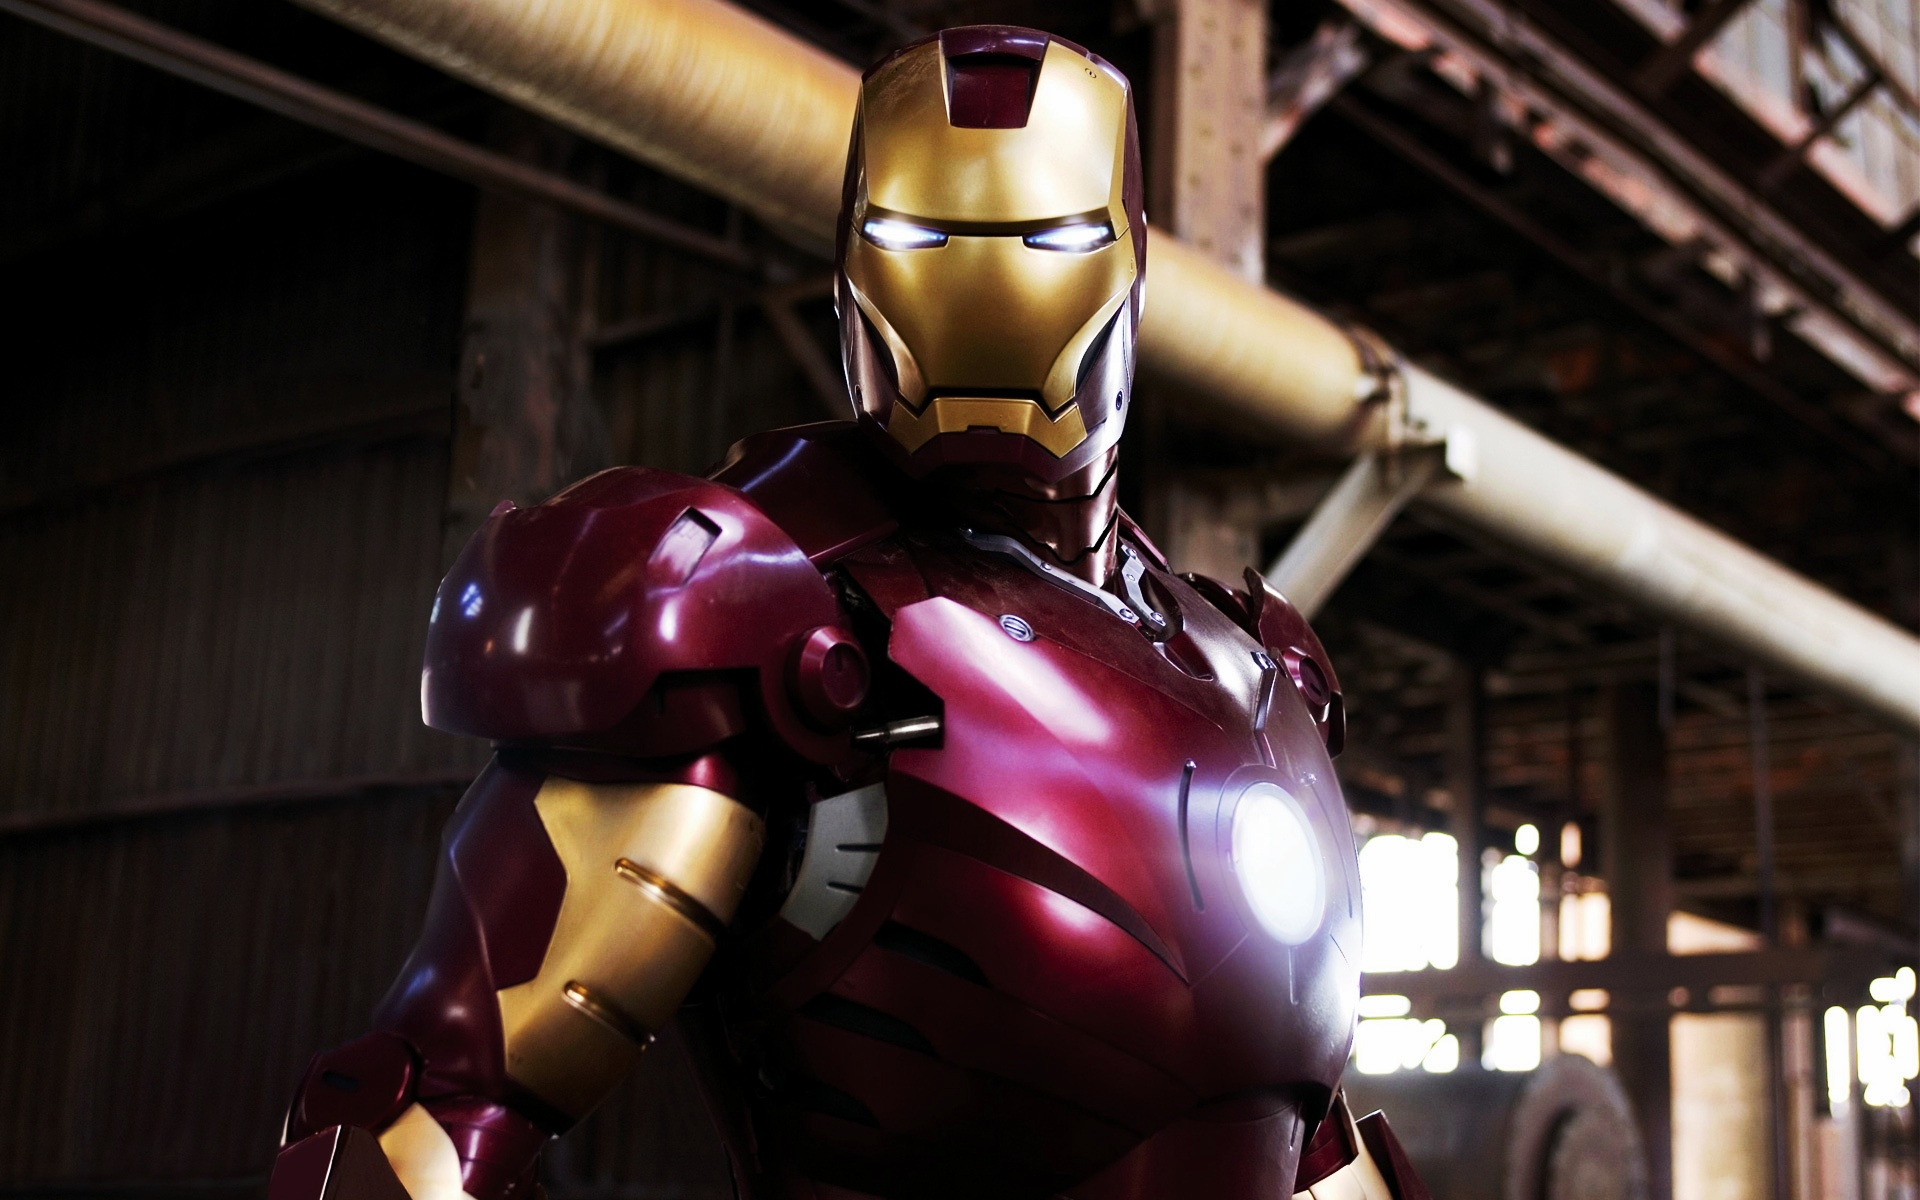 Iron Man Movie Still 171.77 Kb